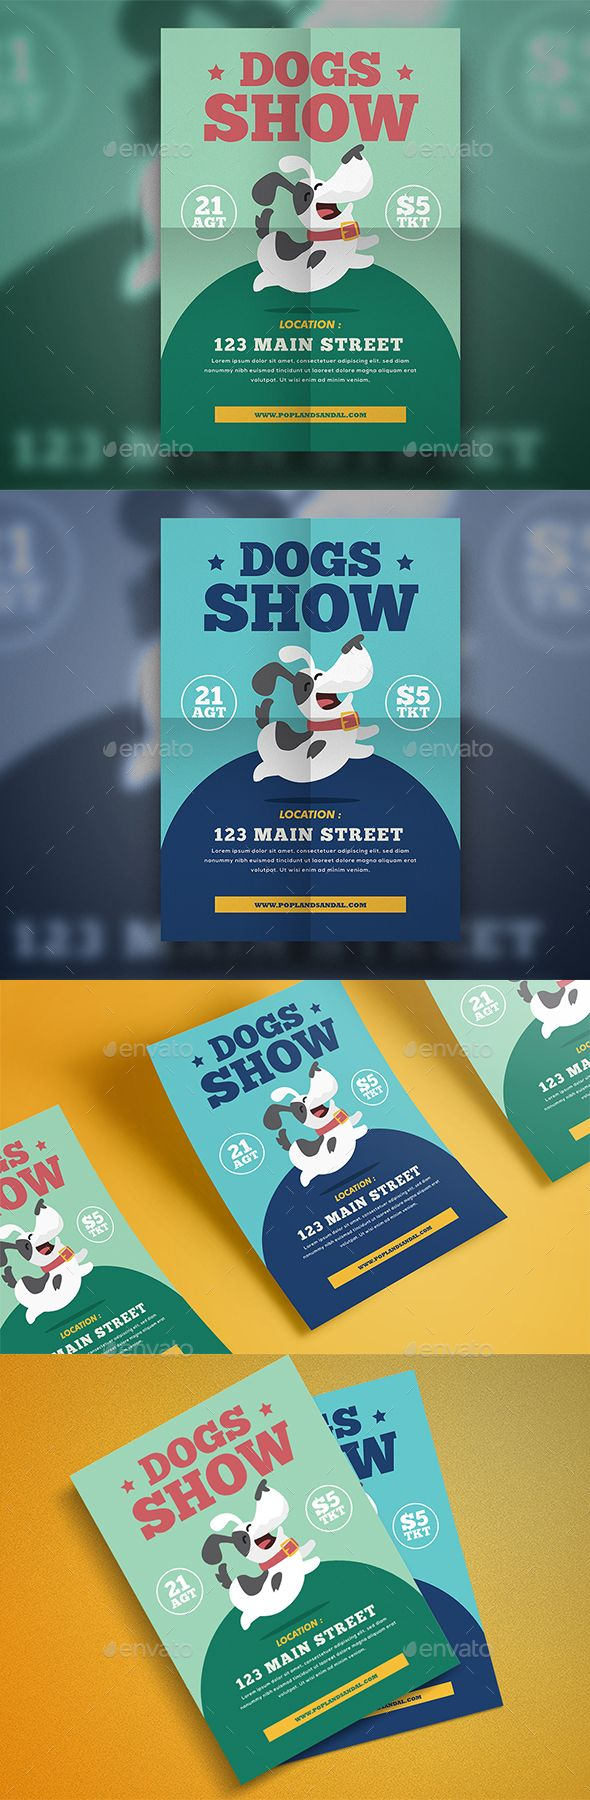 Dog #Show #Flyer - Events Flyers Download here: https://graphicriver.net/item/dog-show-flyer/19748756?ref=alena994